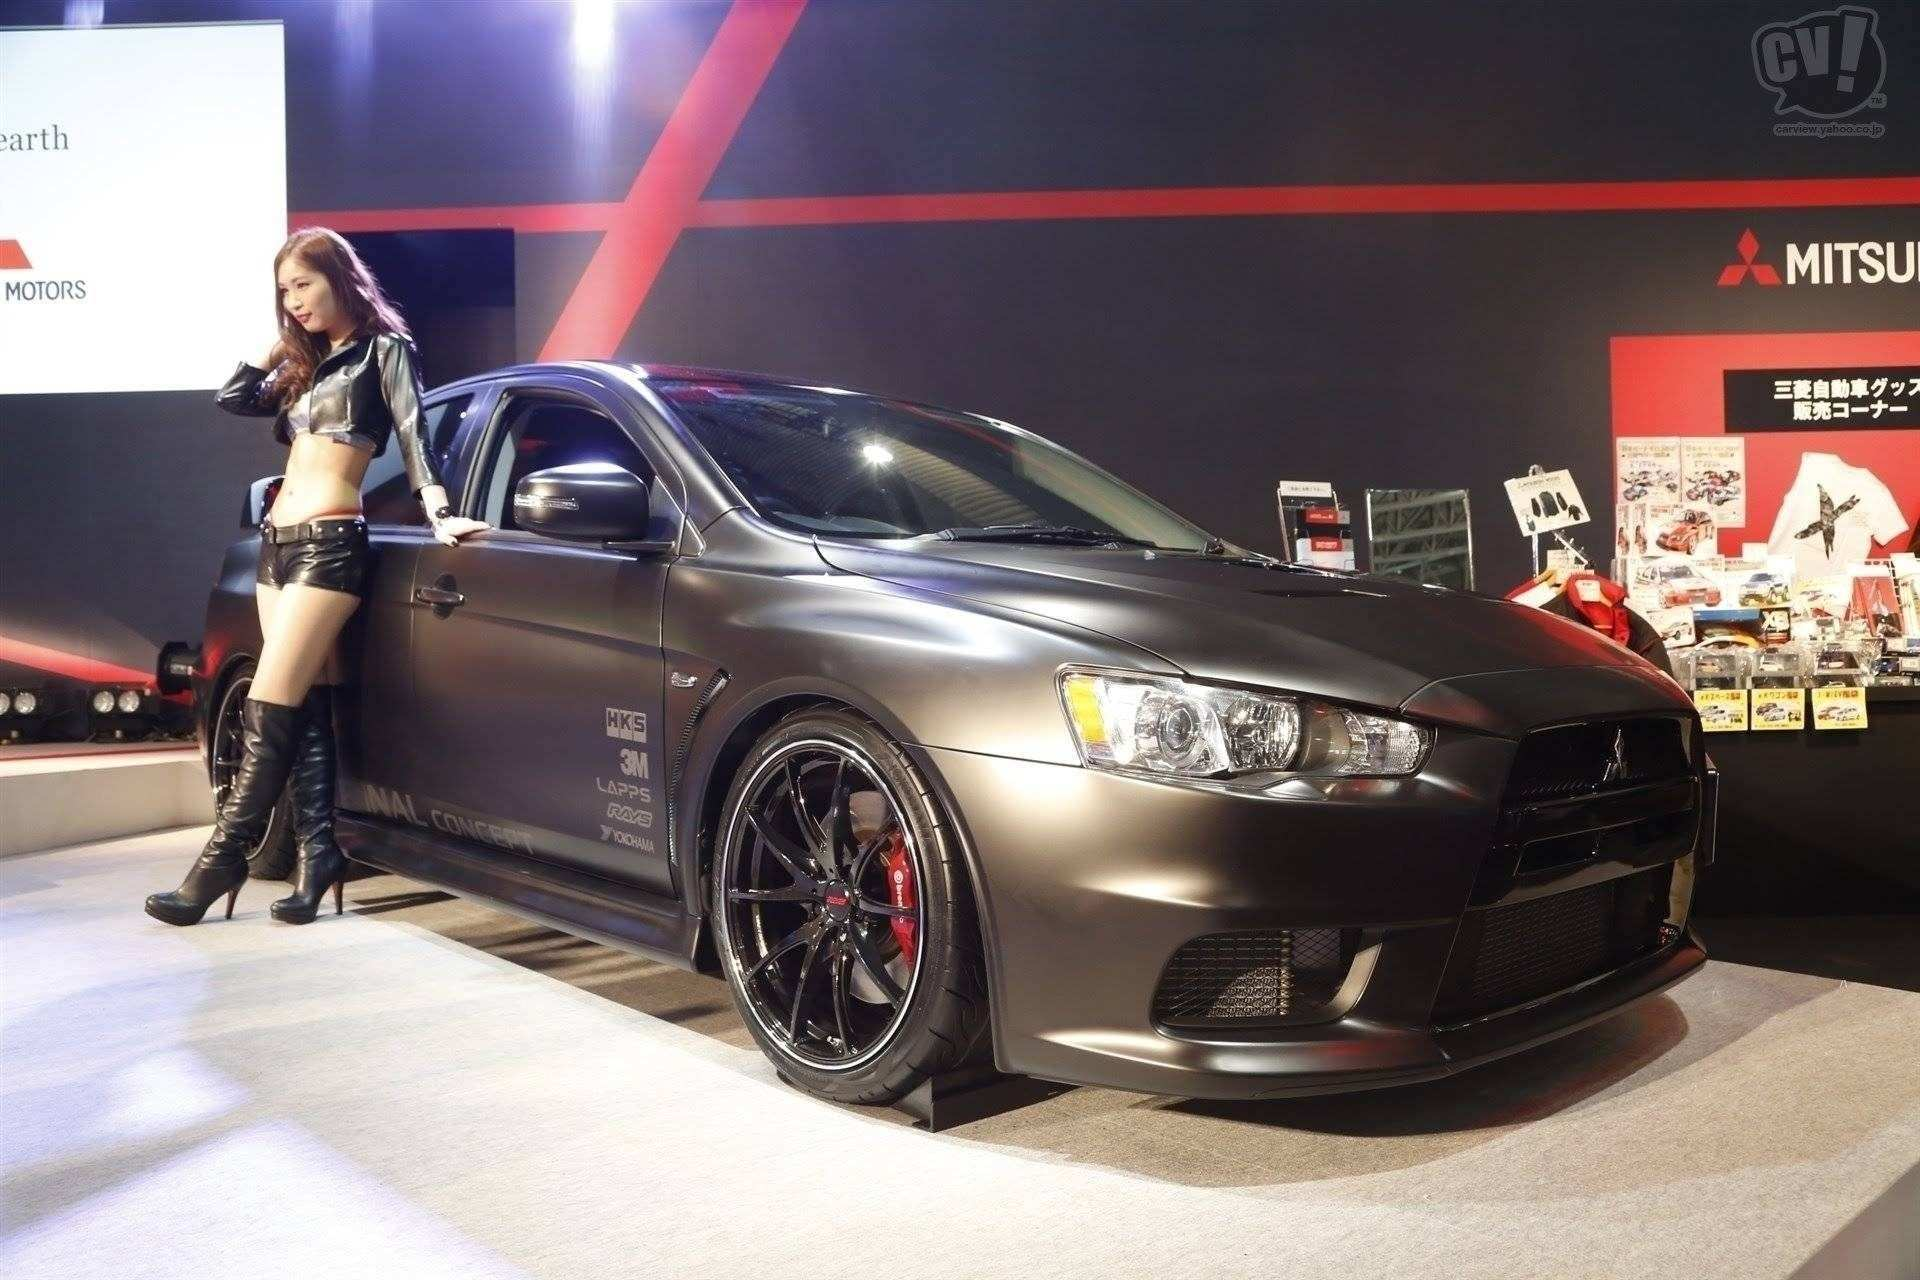 26 All New 2019 Mitsubishi Lancer EVO XI Images